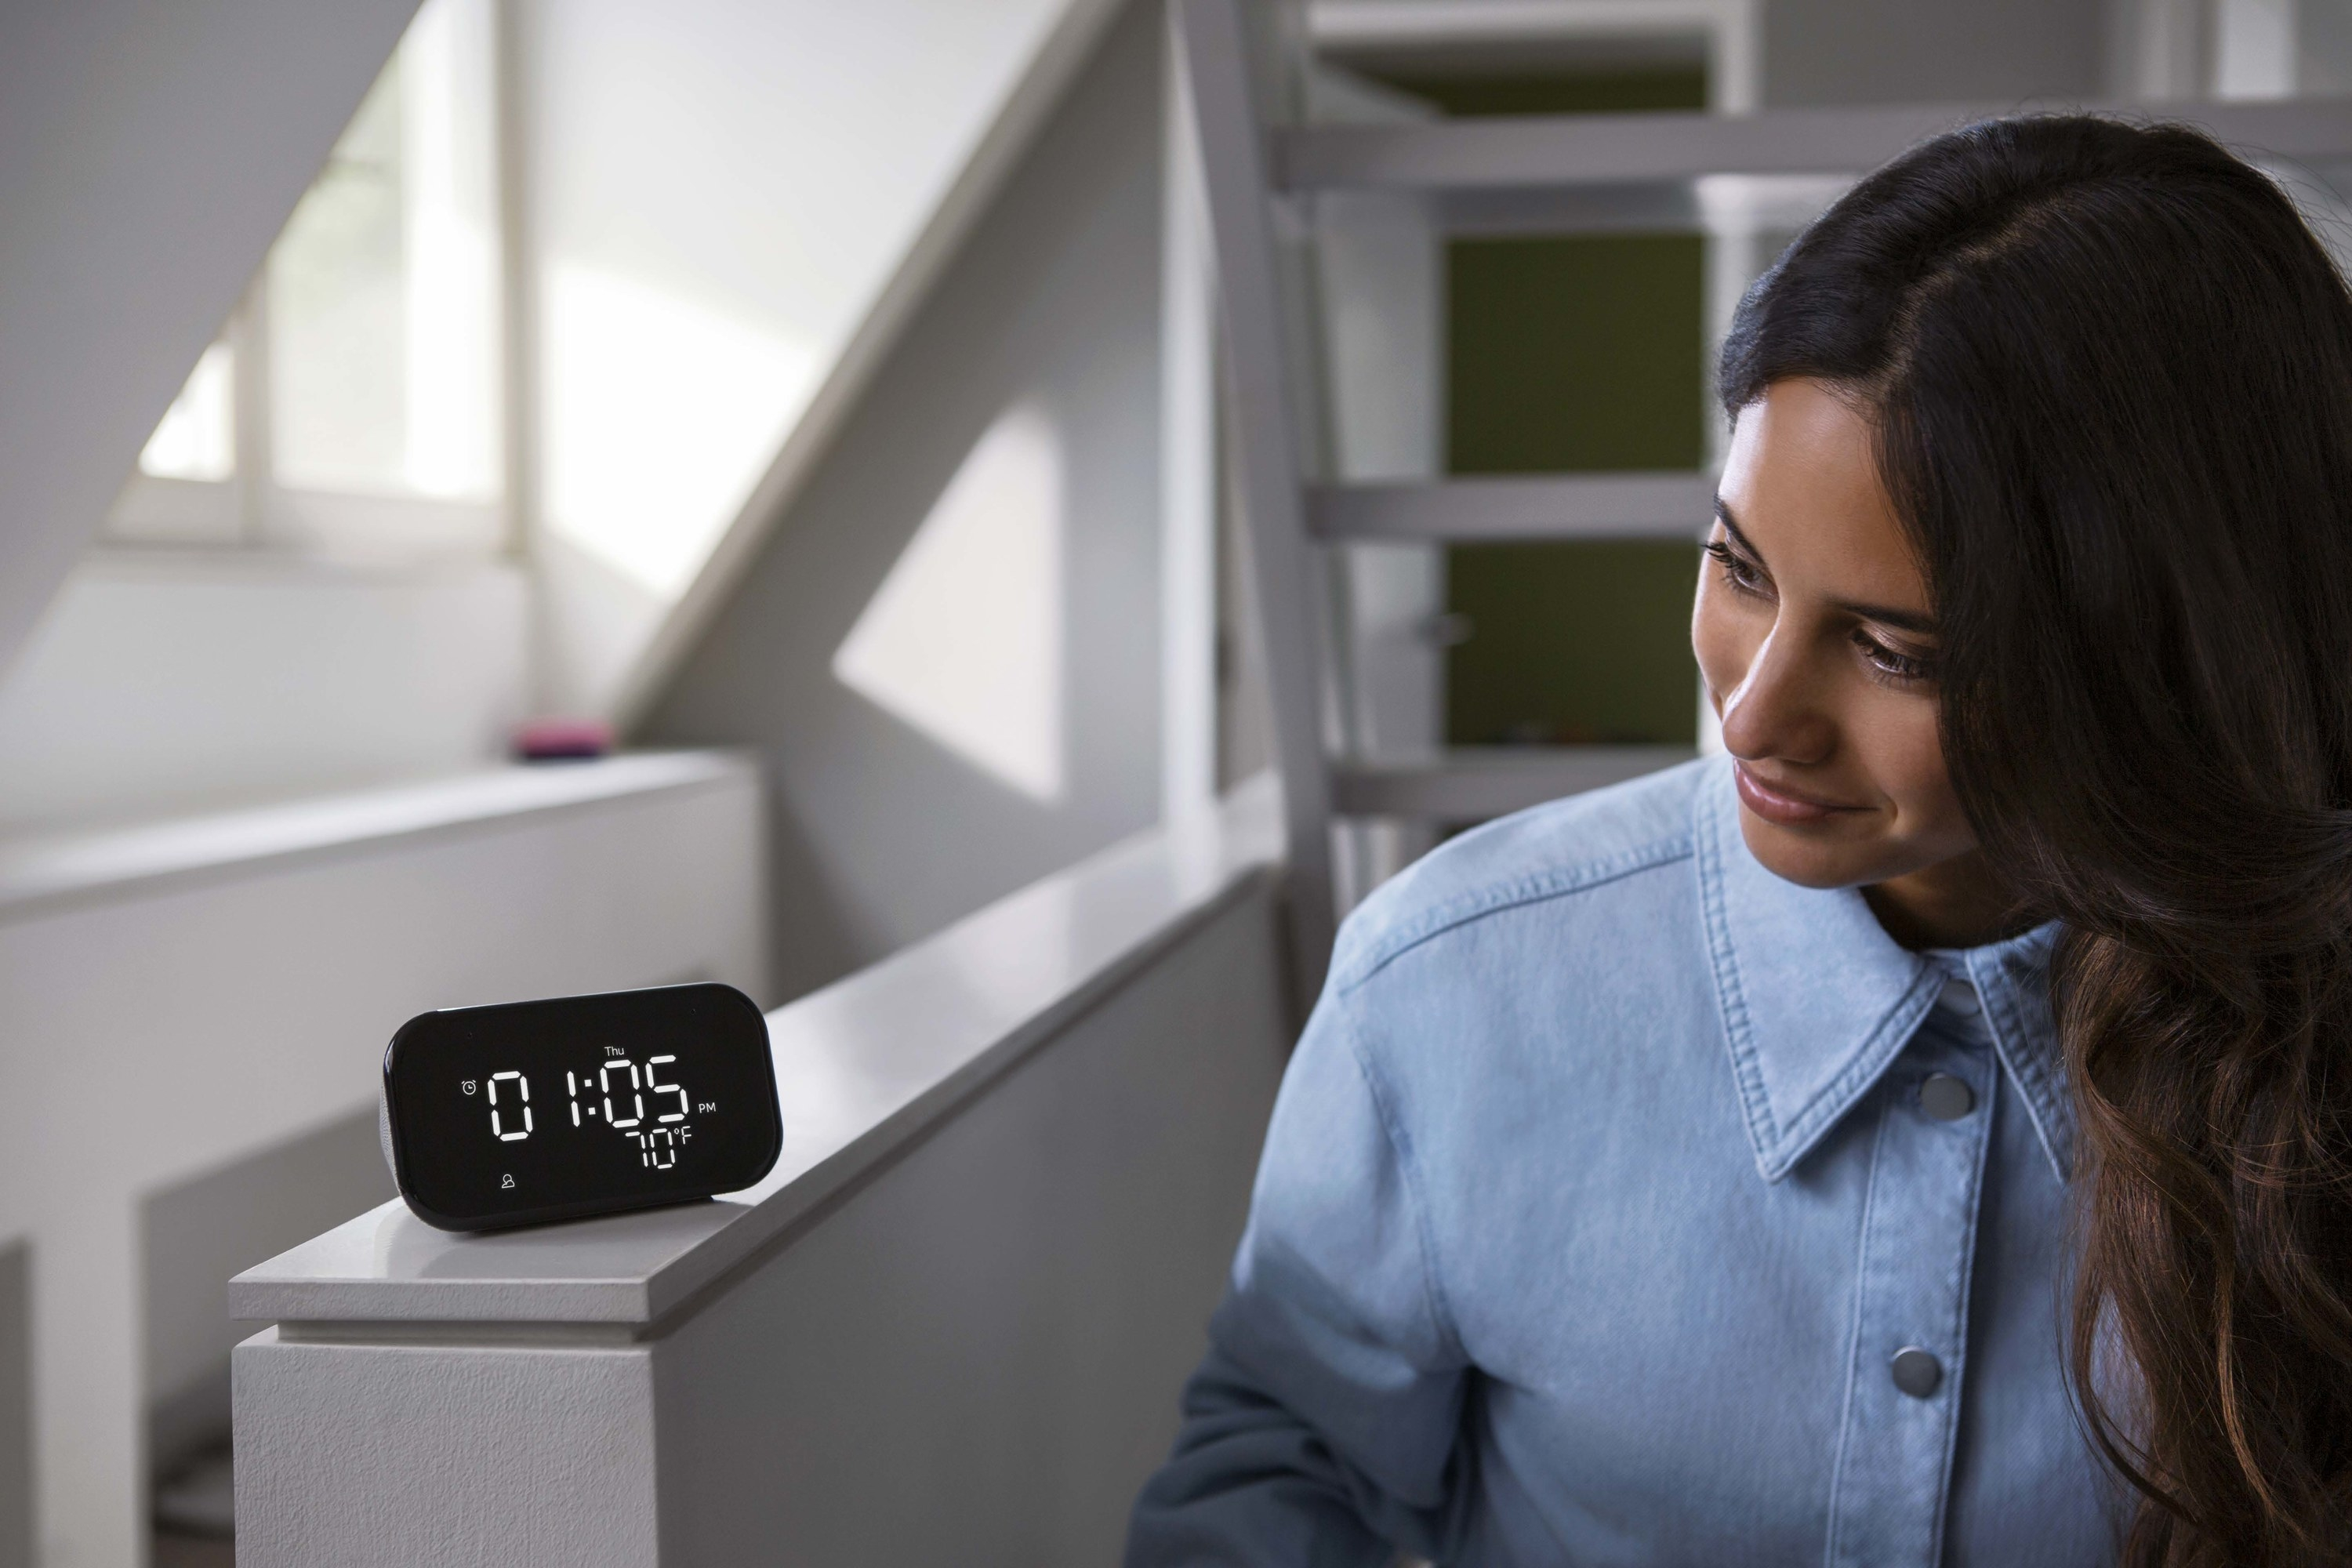 A model looking at the smart clock